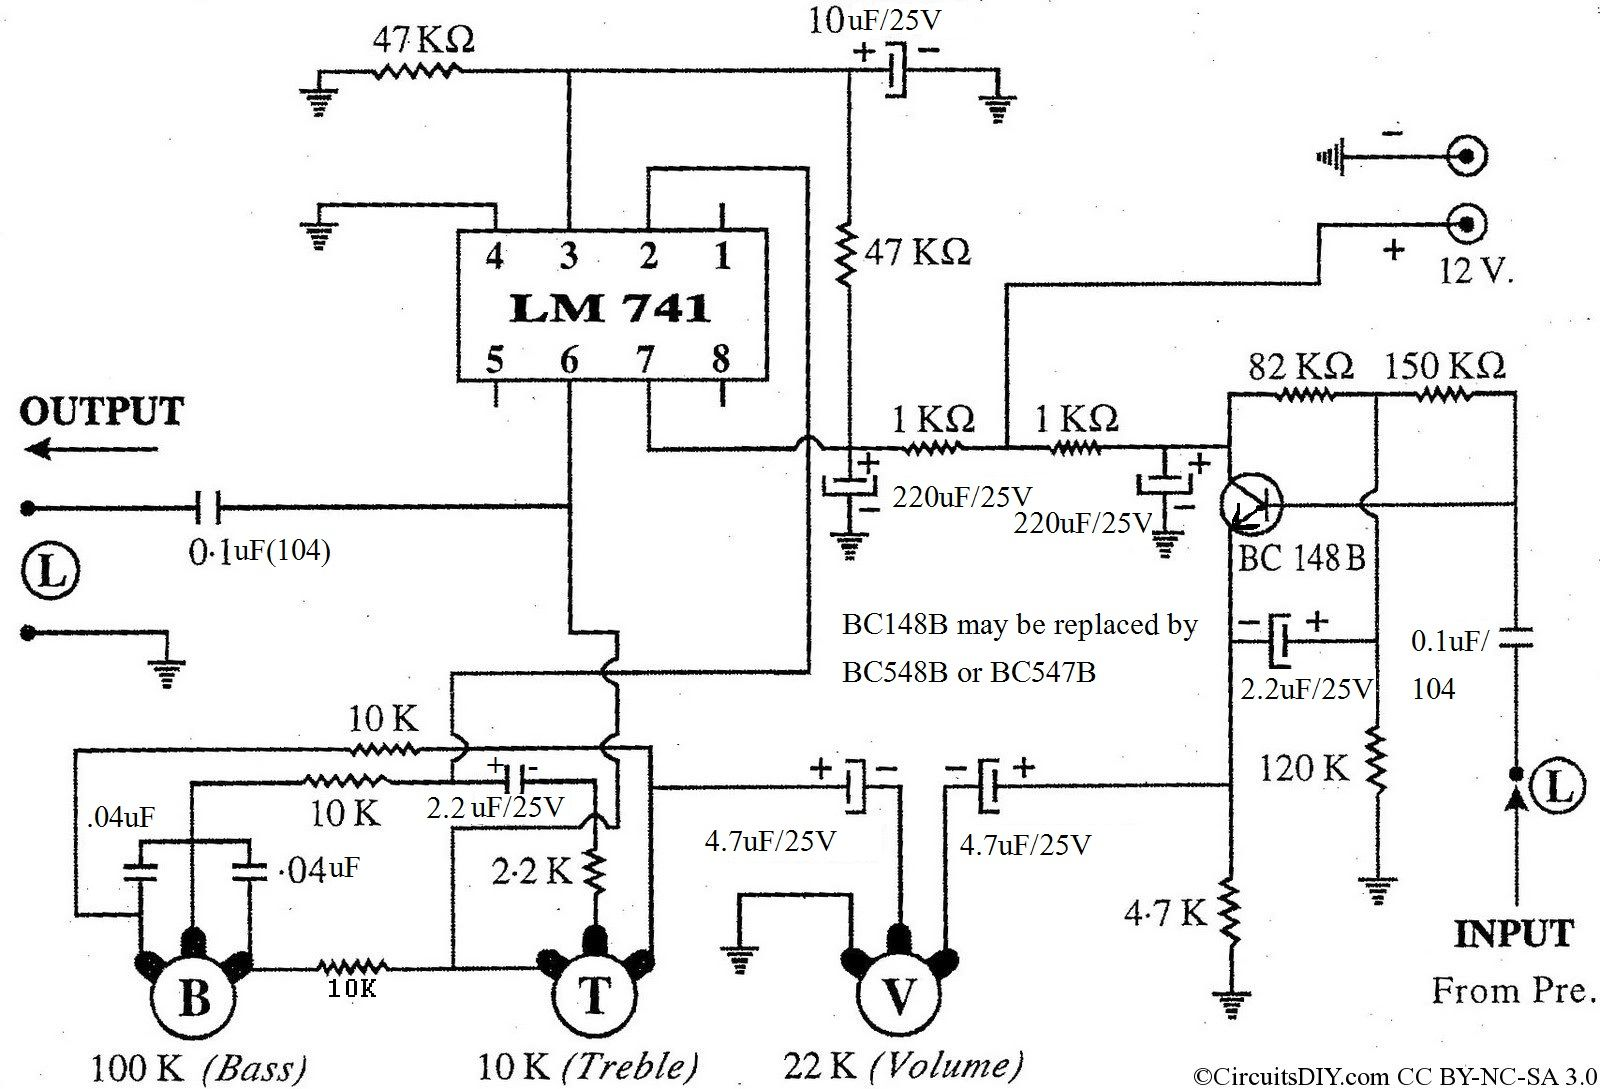 A Large Online Repository Or Library Of Guitar Pedal Schematics Draw Circuit Diagram Layouts Pcb Transfers And Tagboard All Rights Reserved To Respective Owners